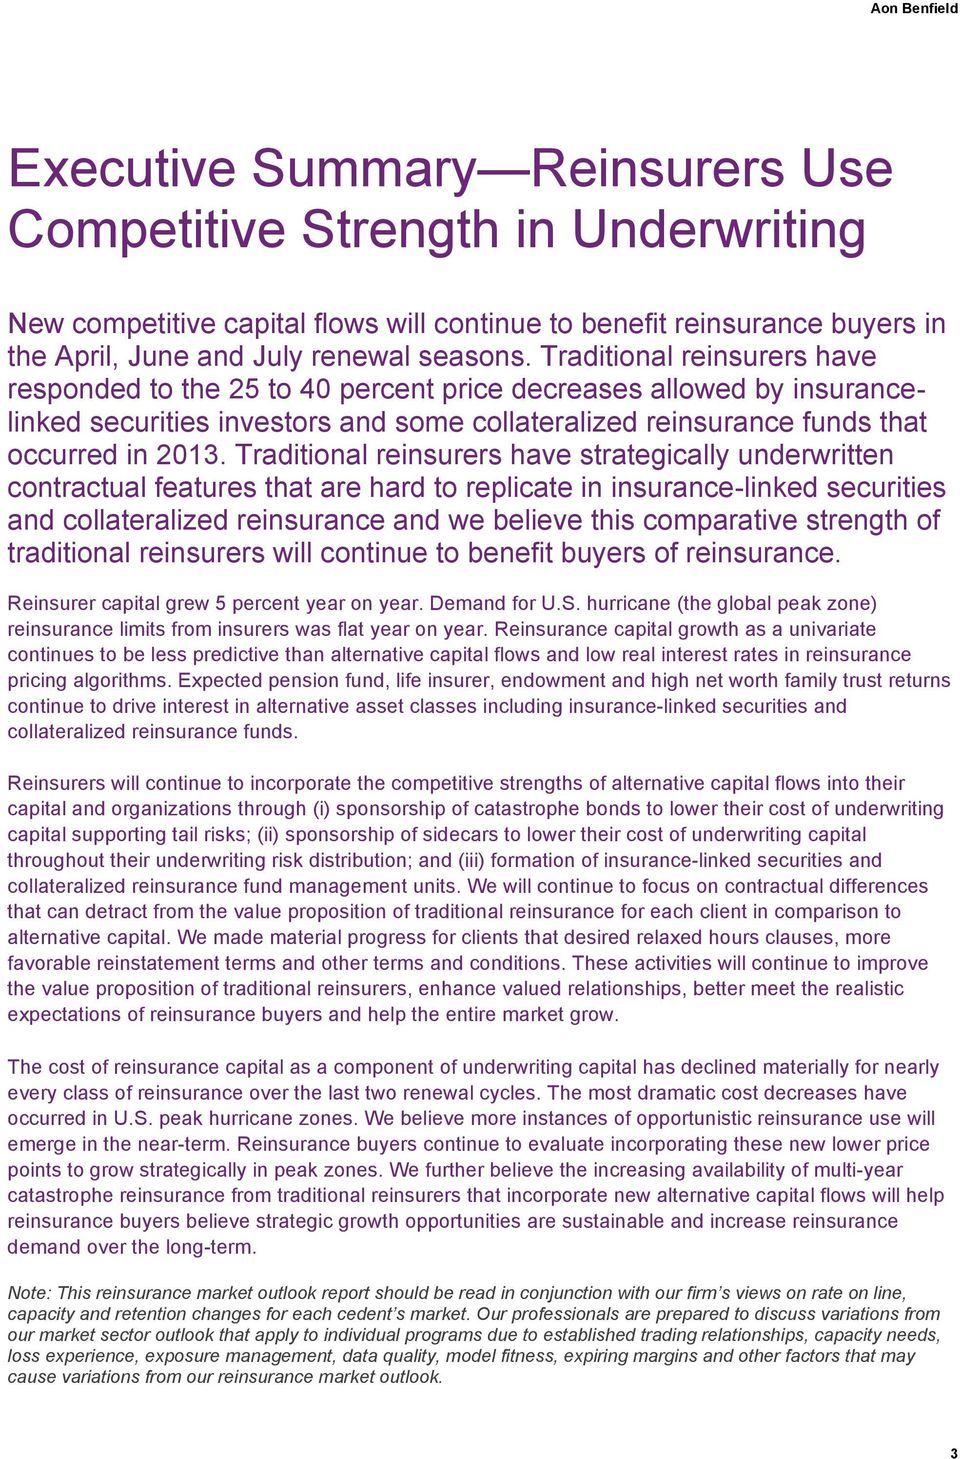 Traditional reinsurers have strategically underwritten contractual features that are hard to replicate in insurance-linked securities and collateralized reinsurance and we believe this comparative